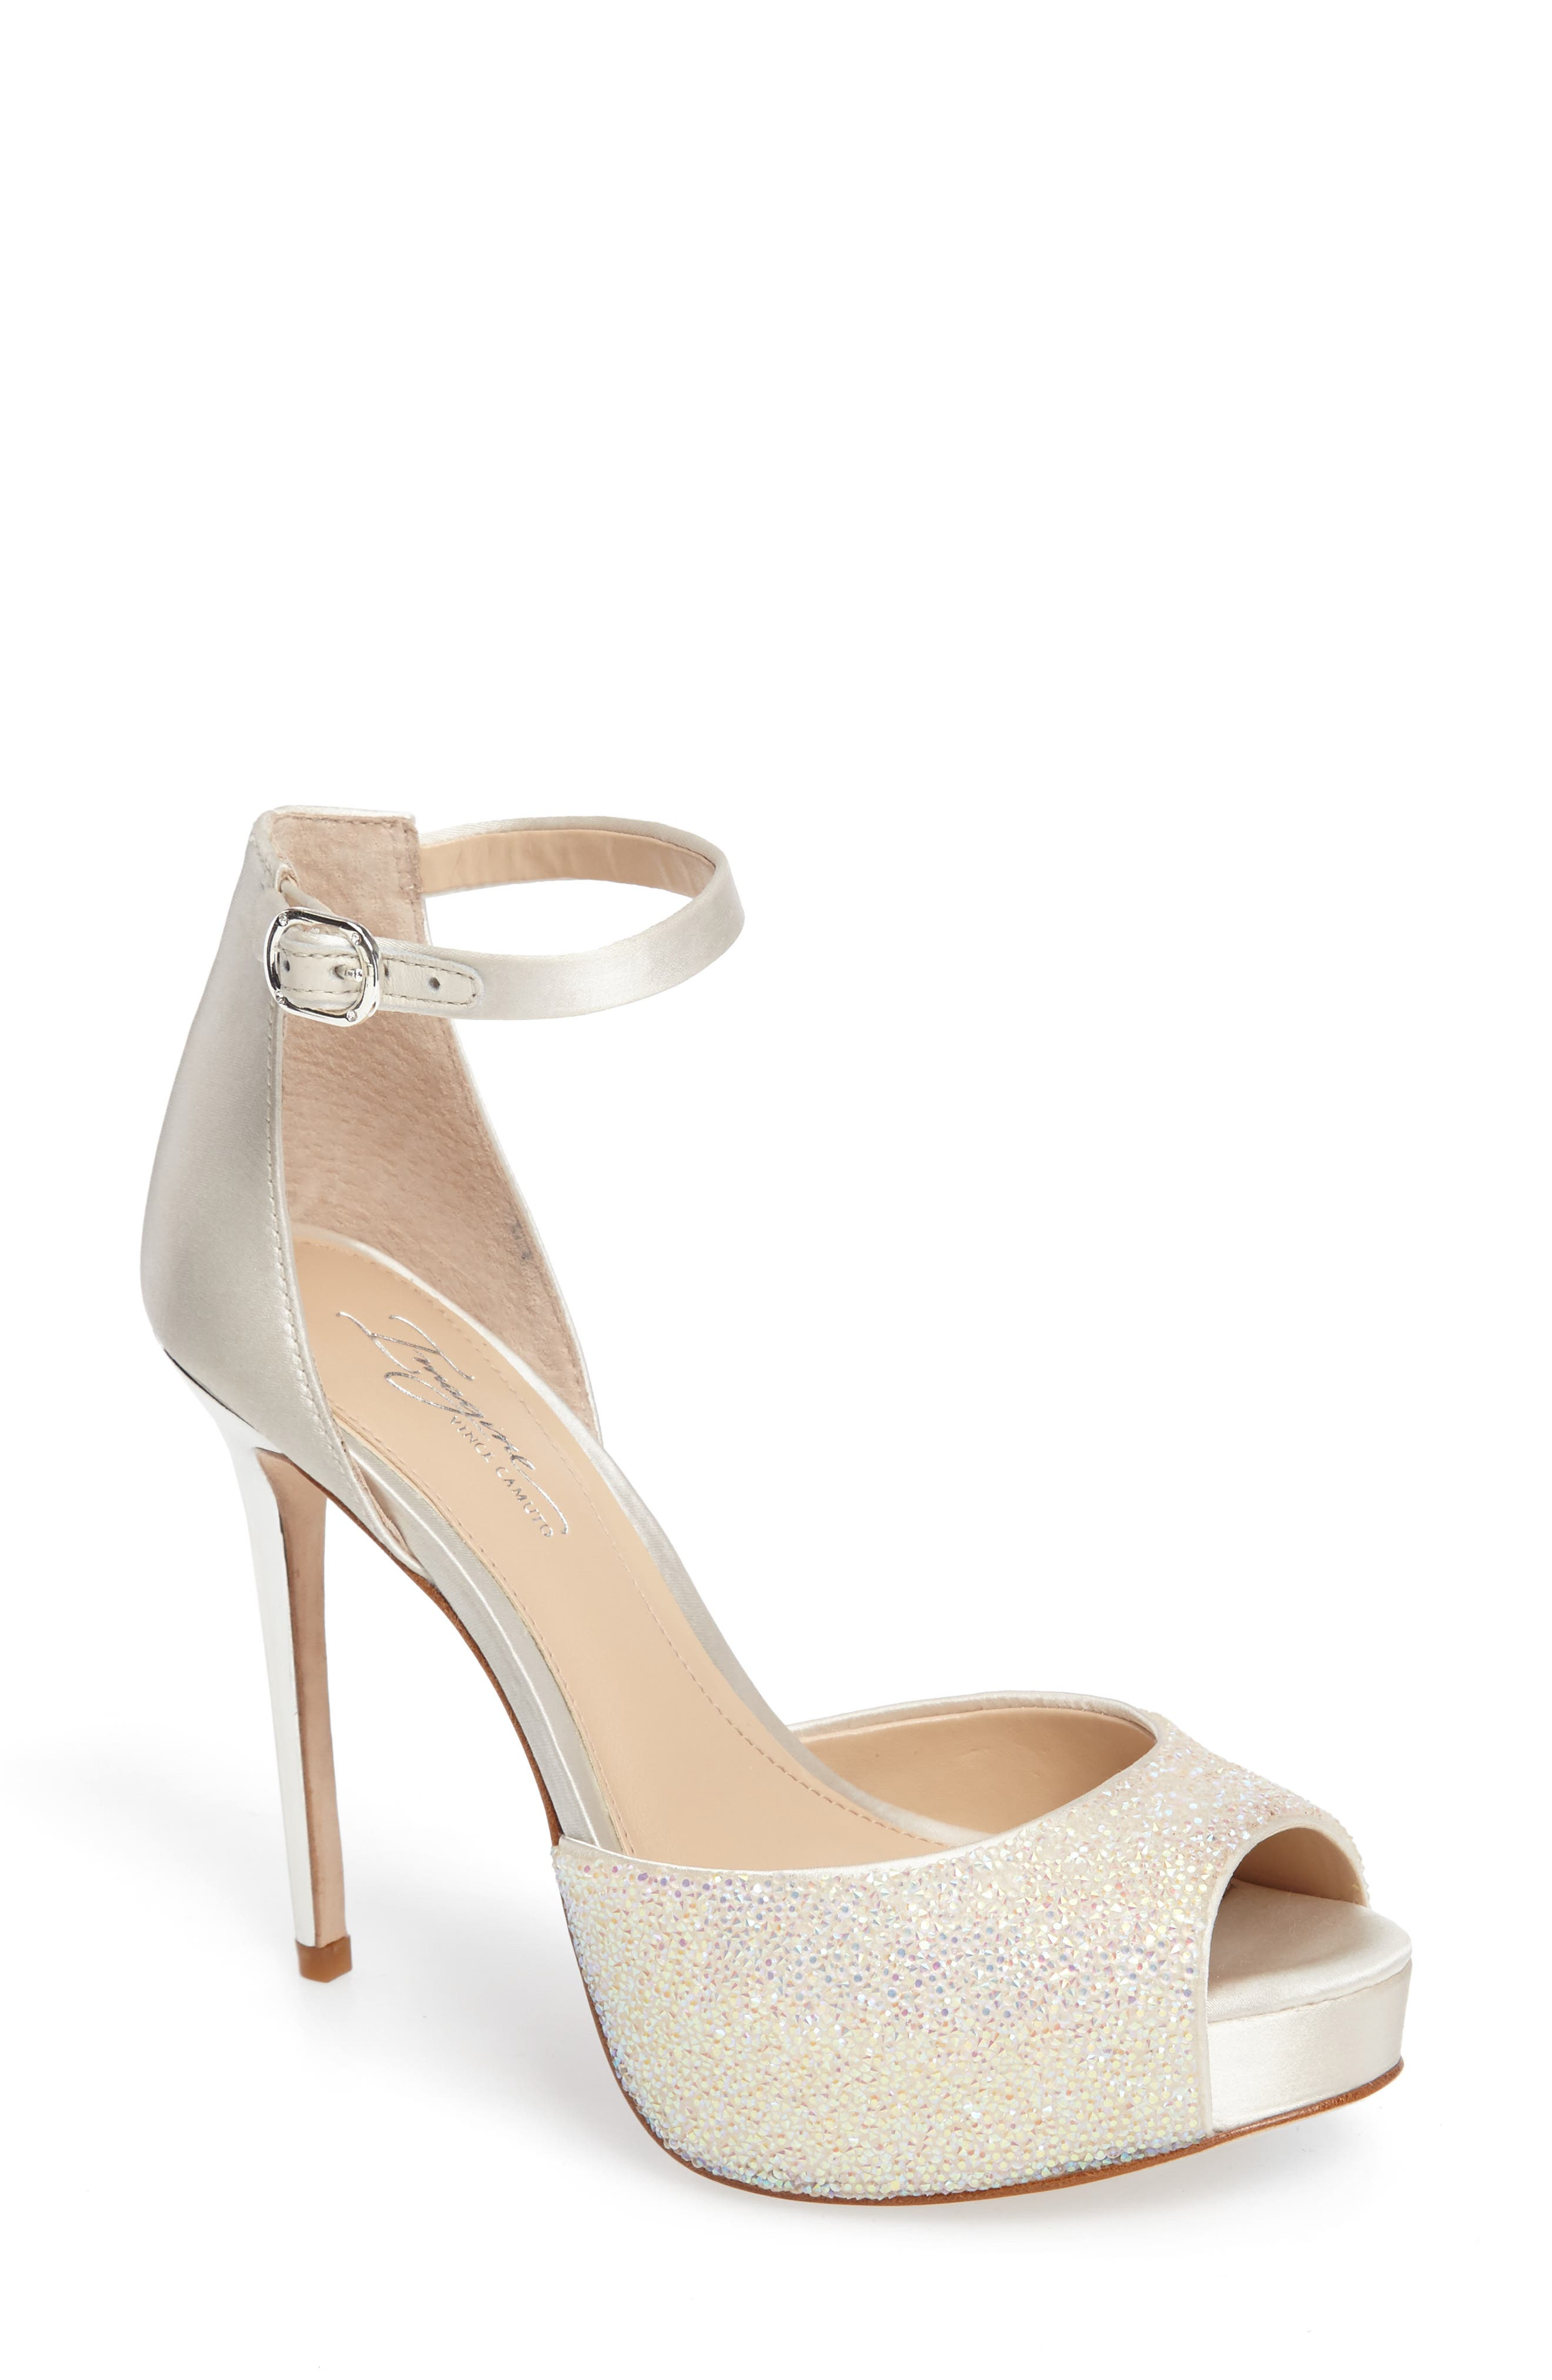 Imagine by Vince Camuto Karleigh Platform Sandal (Women)